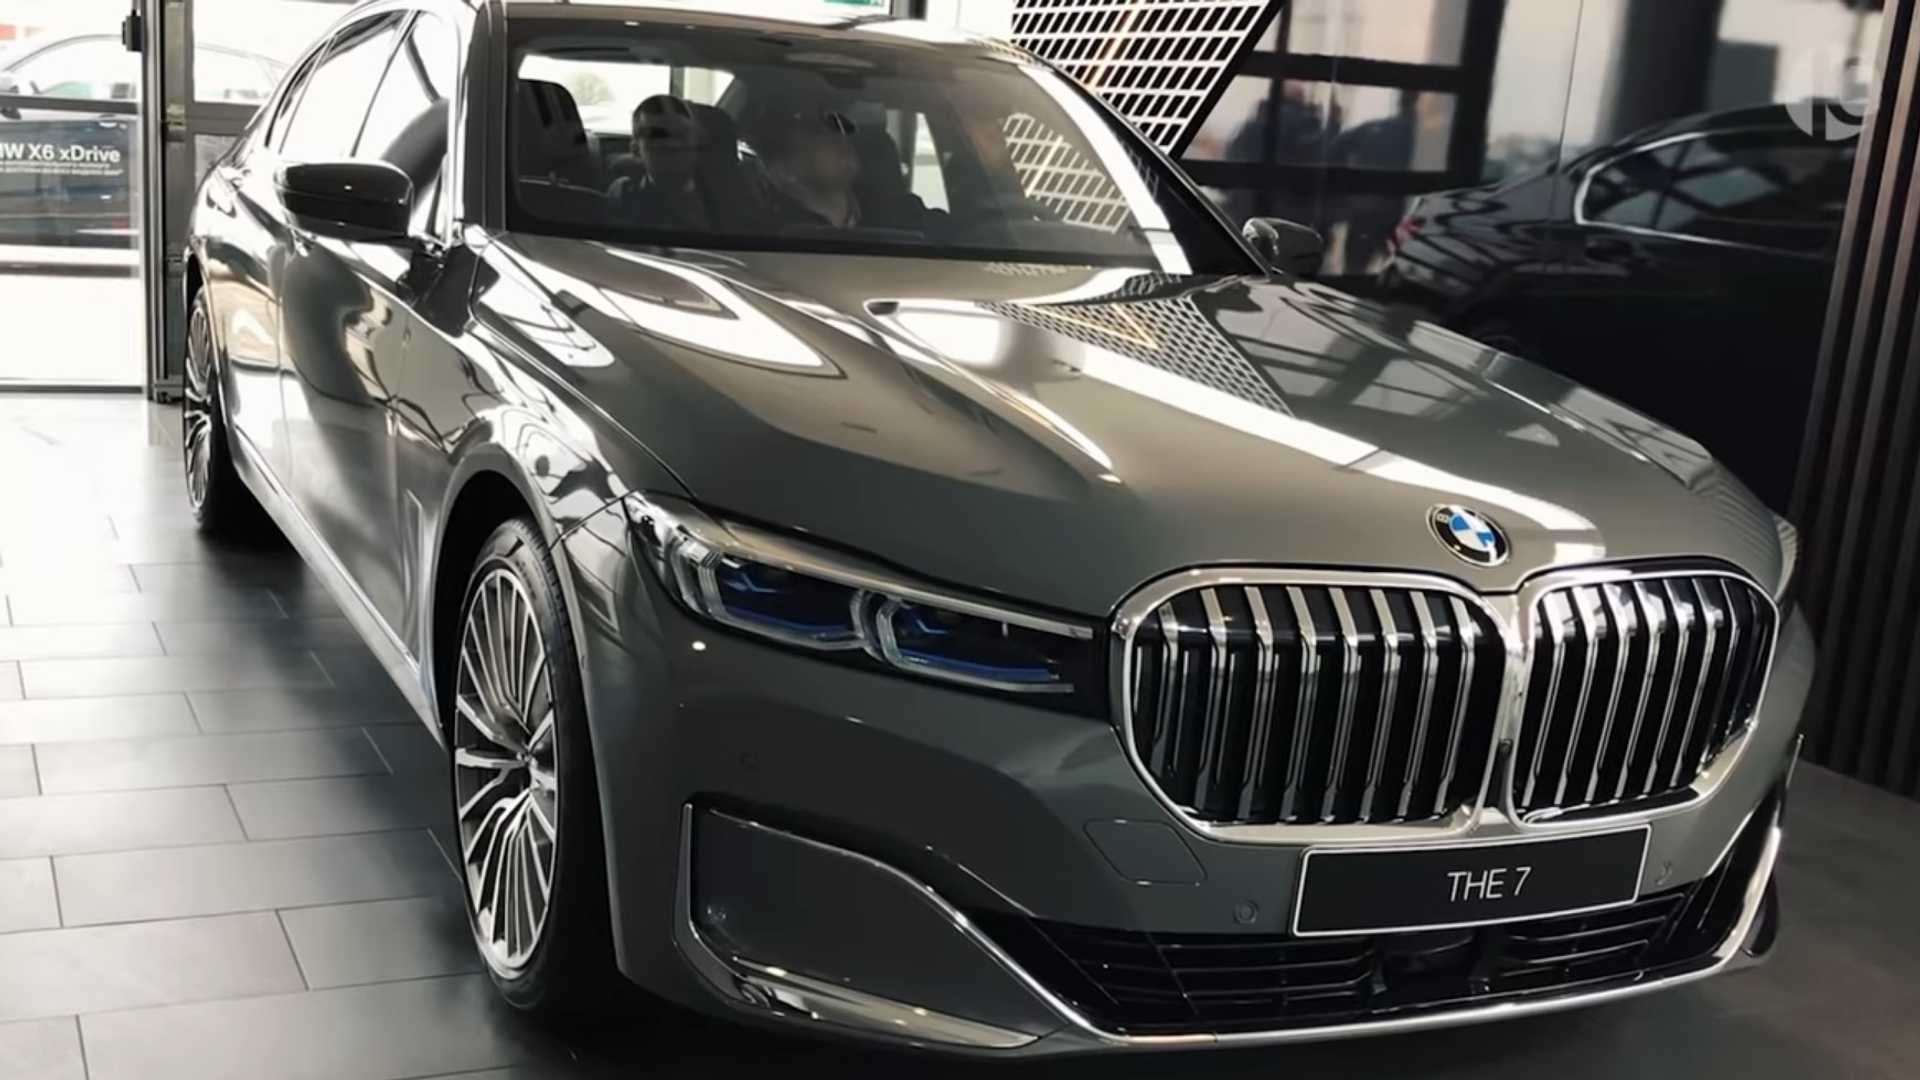 98 All New 2020 BMW 7 Series Exterior